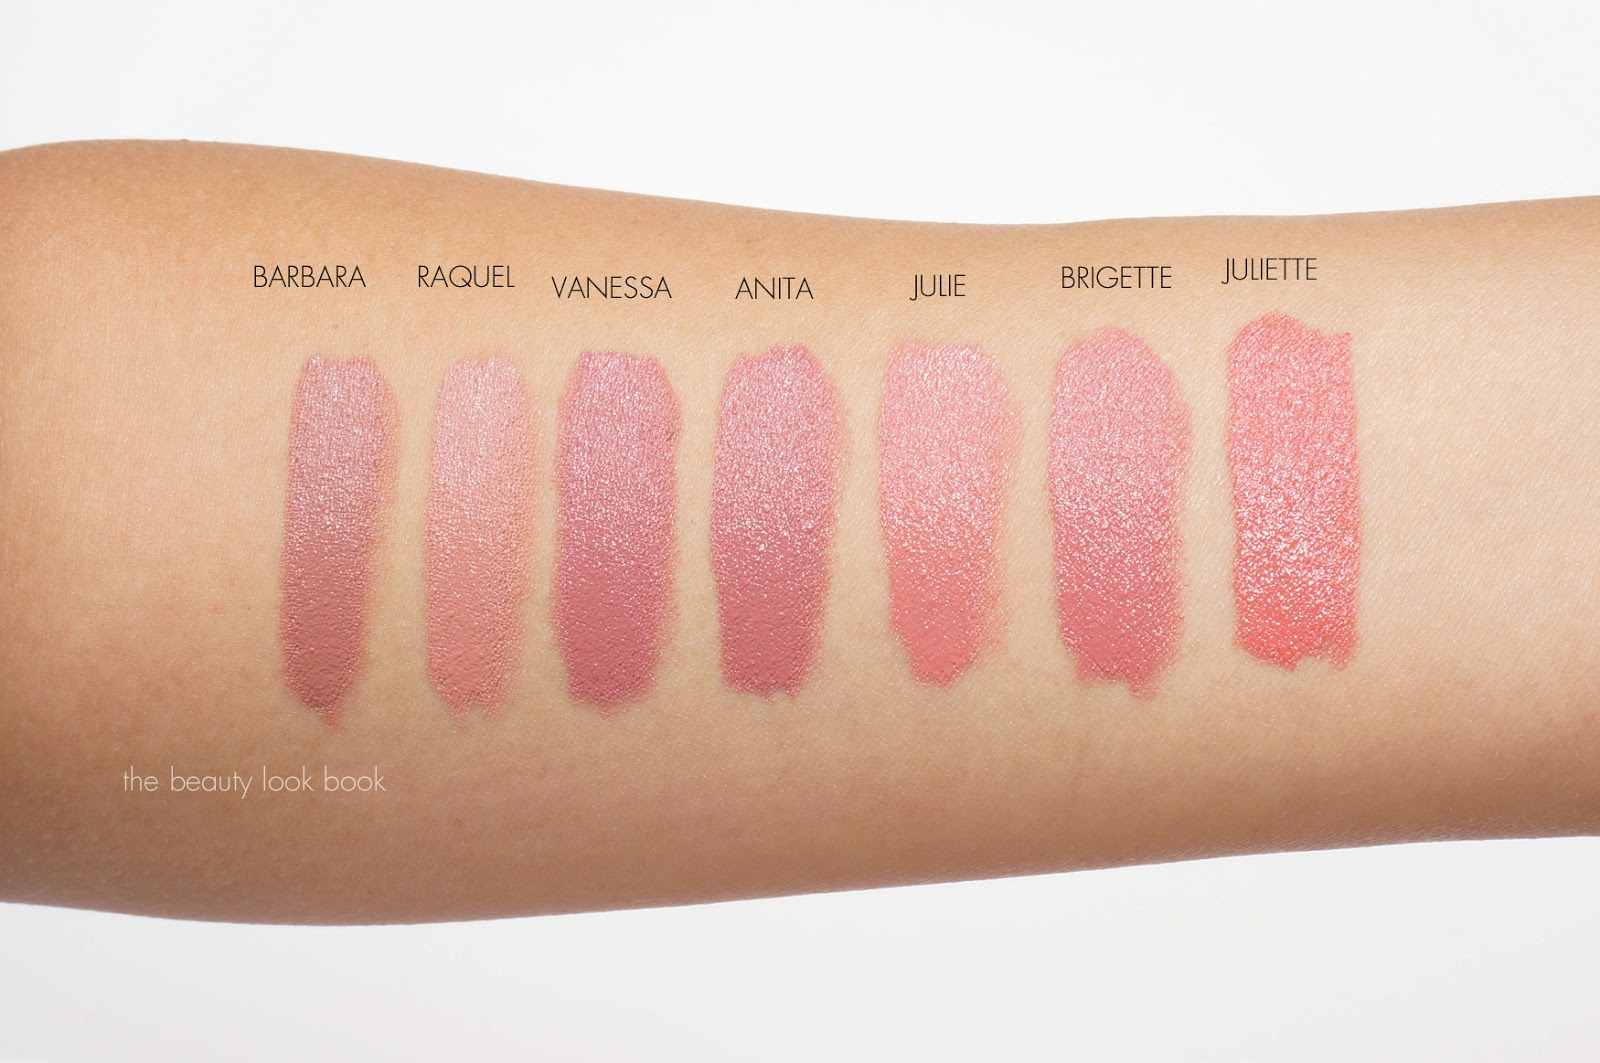 Extrêmement NARS Audacious Lipsticks | Lip Swatches for Barbara, Raquel  LB35